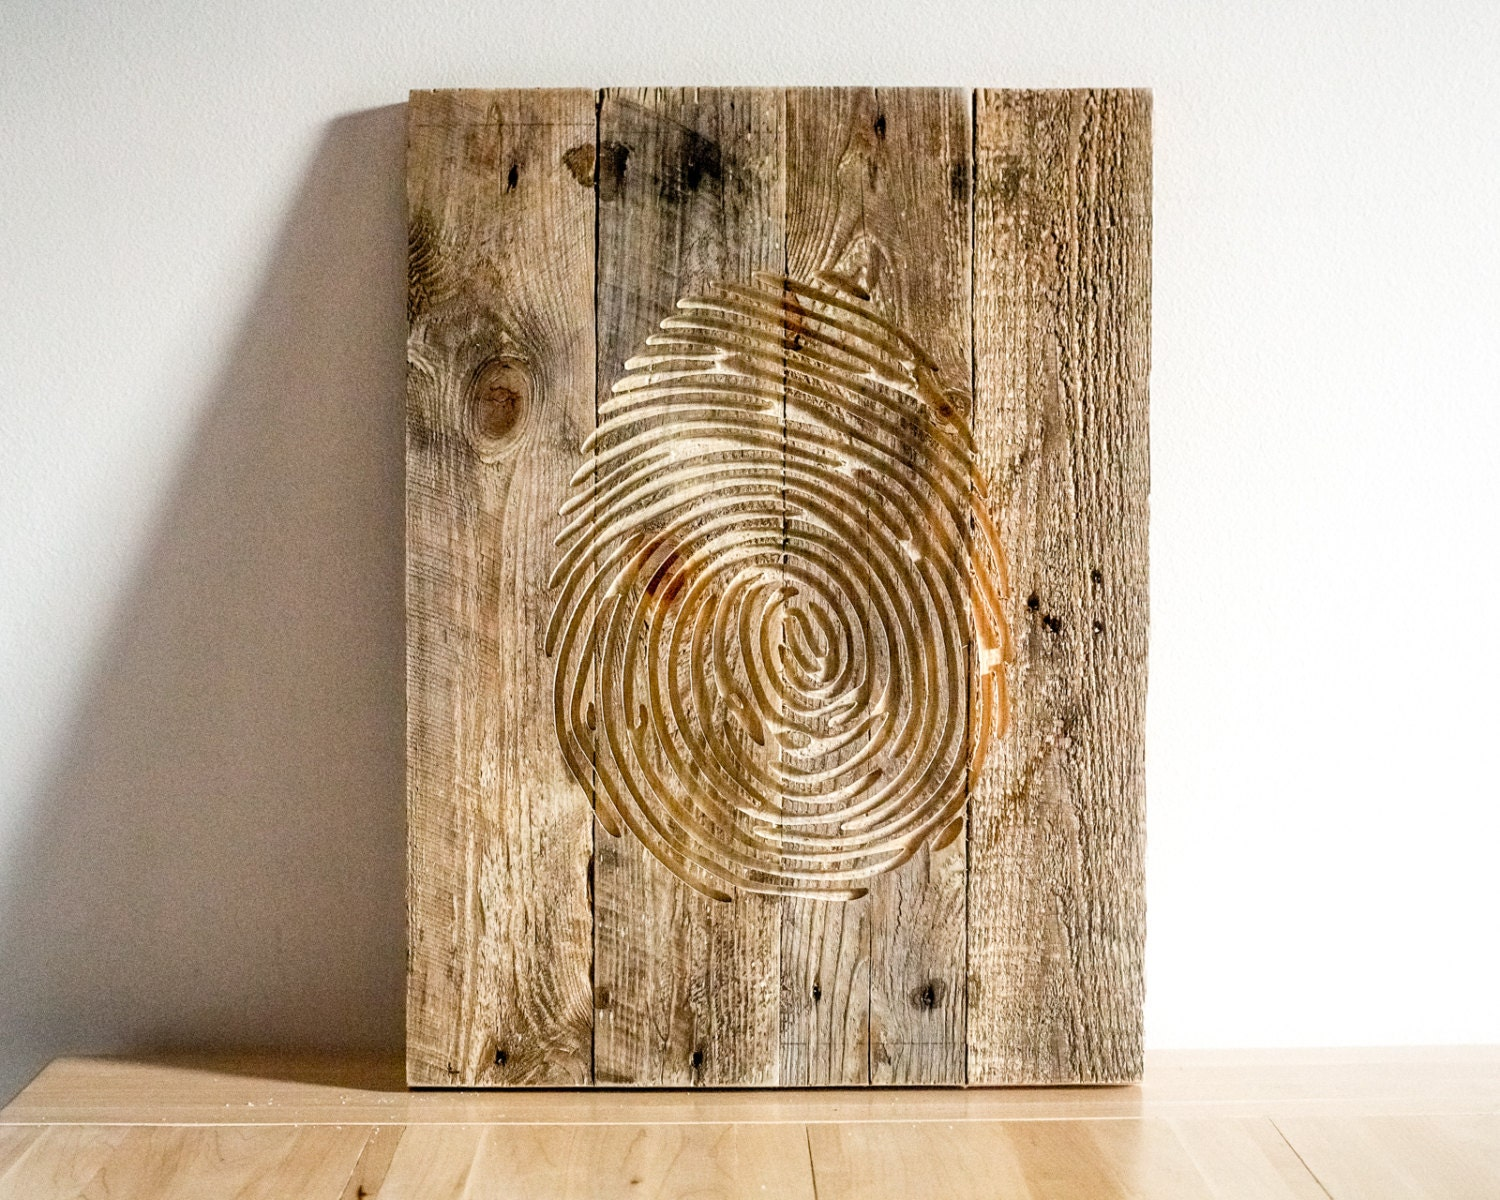 Fingerprint wall art carved wooden hanging for a